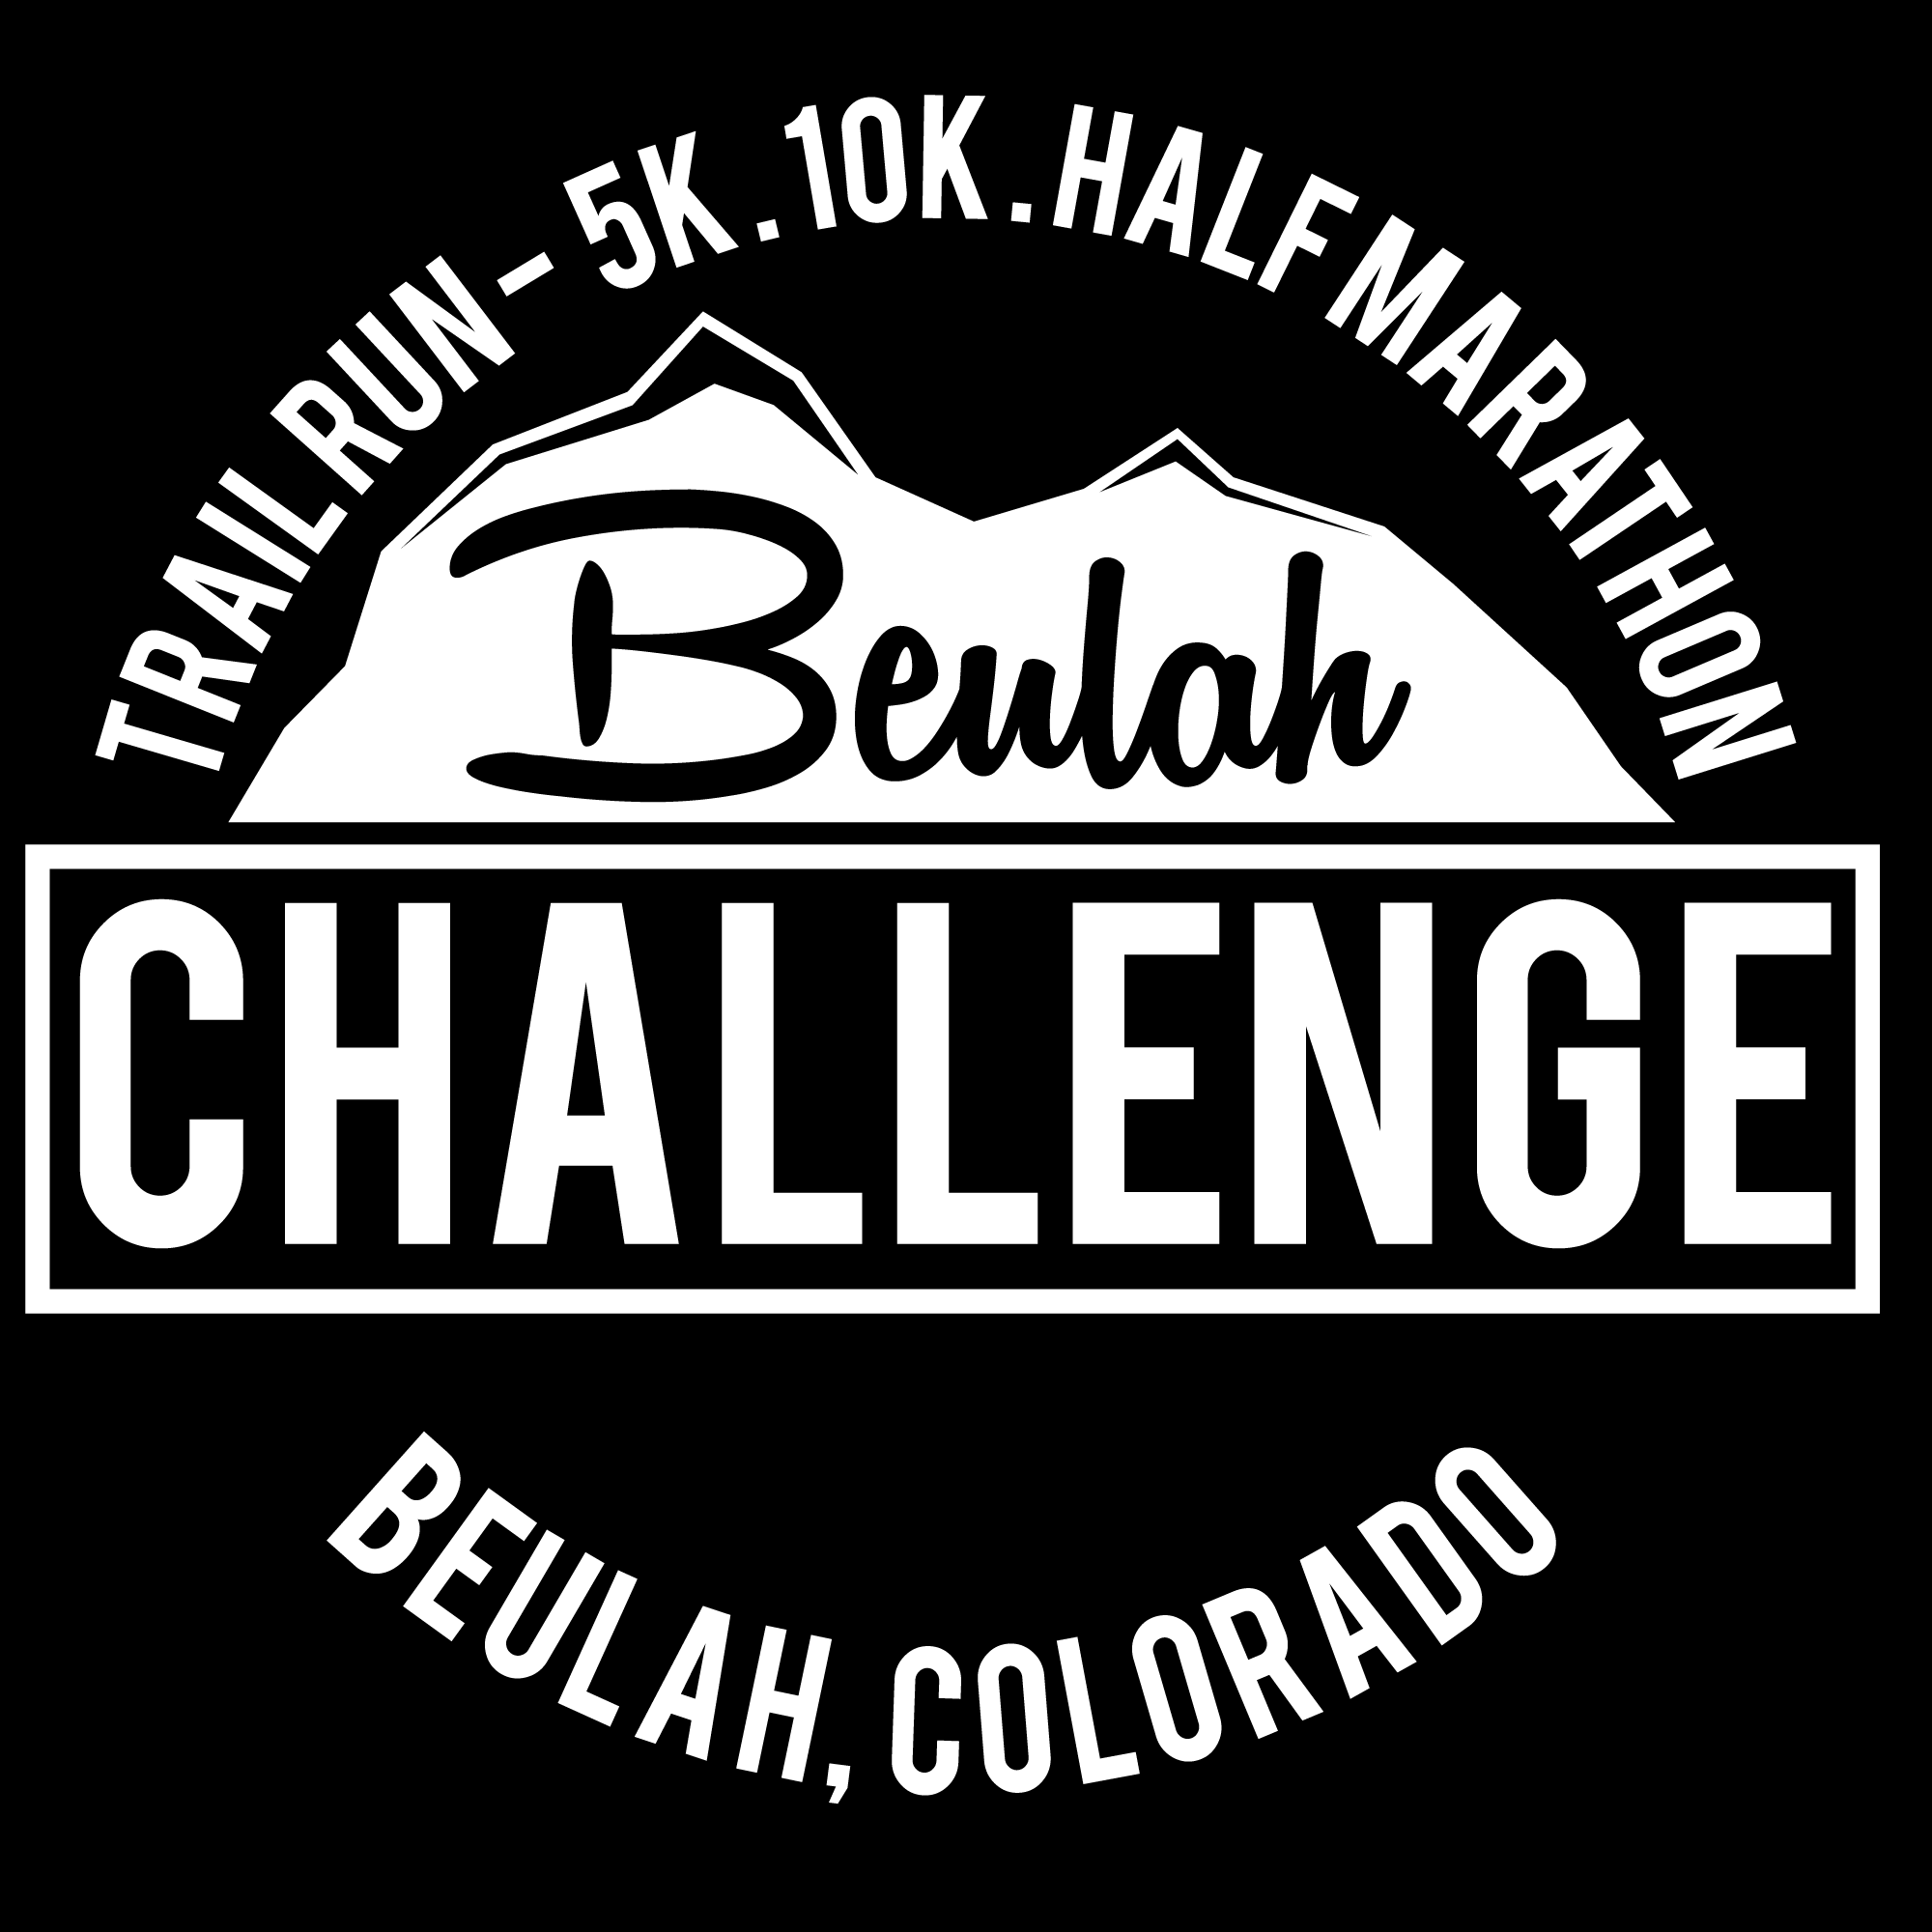 Beulah-Challenge-logo-no-date-white-on-black.png